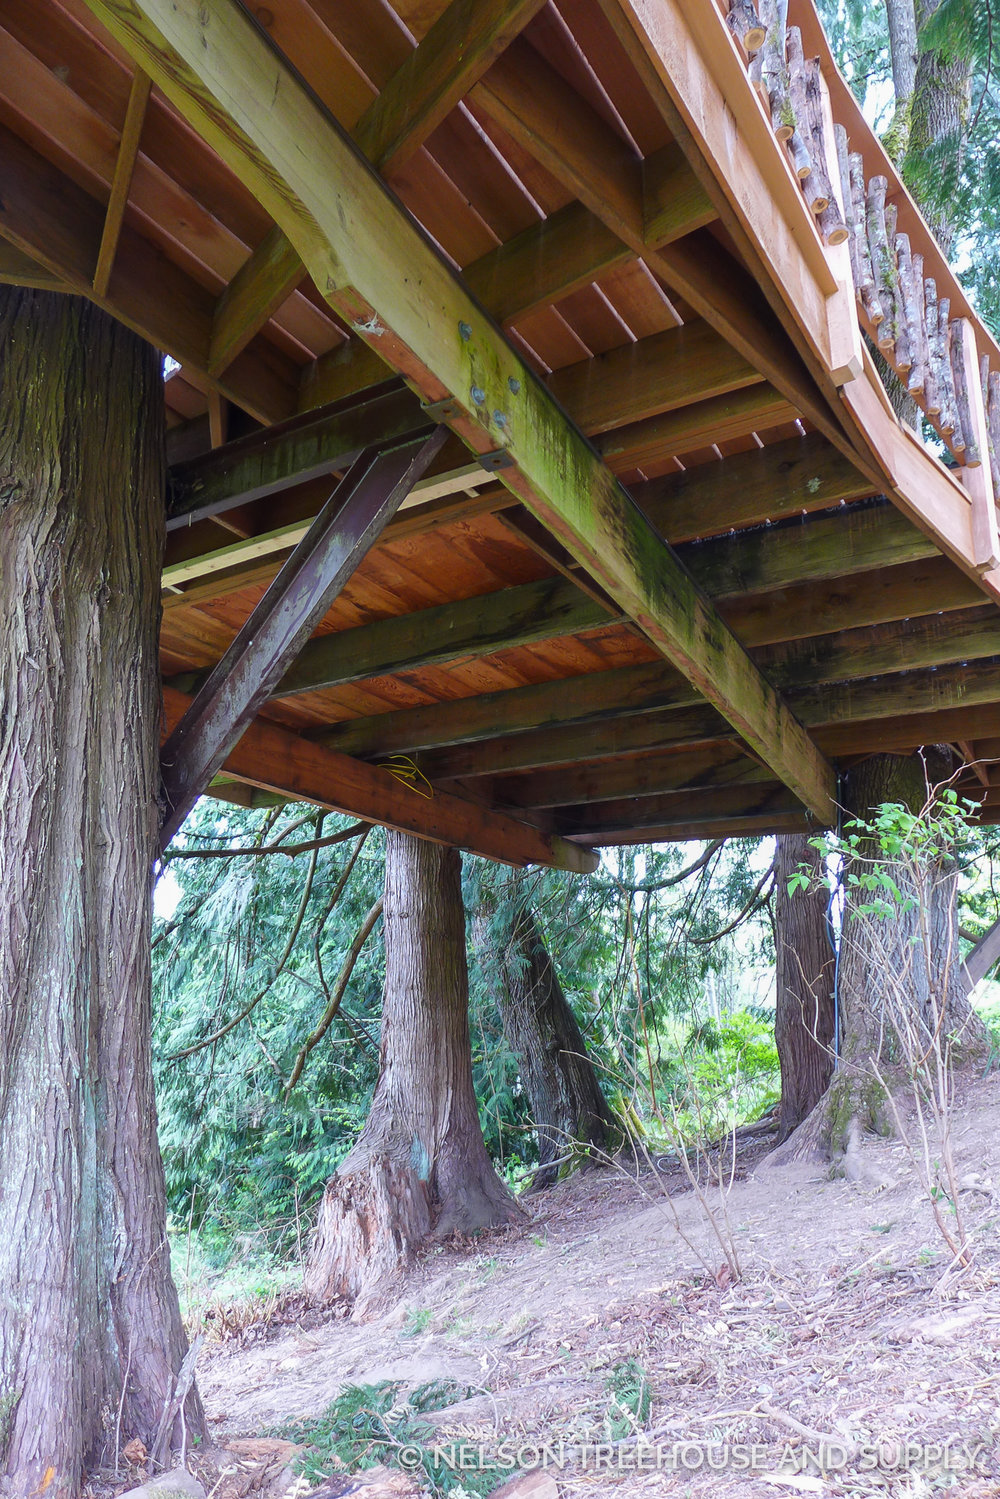 After supporting the treehouse on temporary posts, the crew raised the treehouse, slid out a rotted beam, and replaced it with pressure-treated wood.